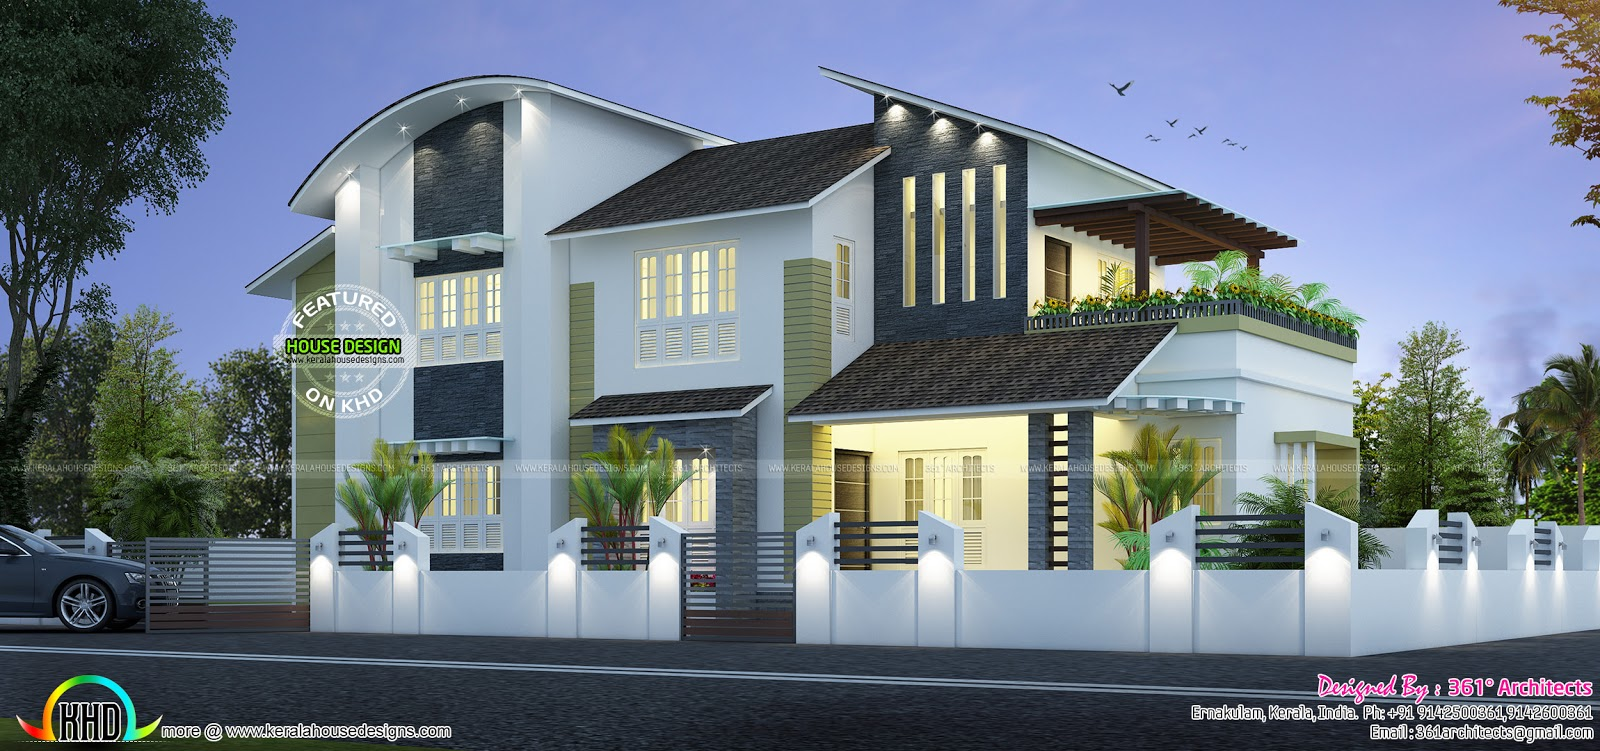 New modern house 35 lakhs kerala home design and floor plans for Contemporary house in kerala